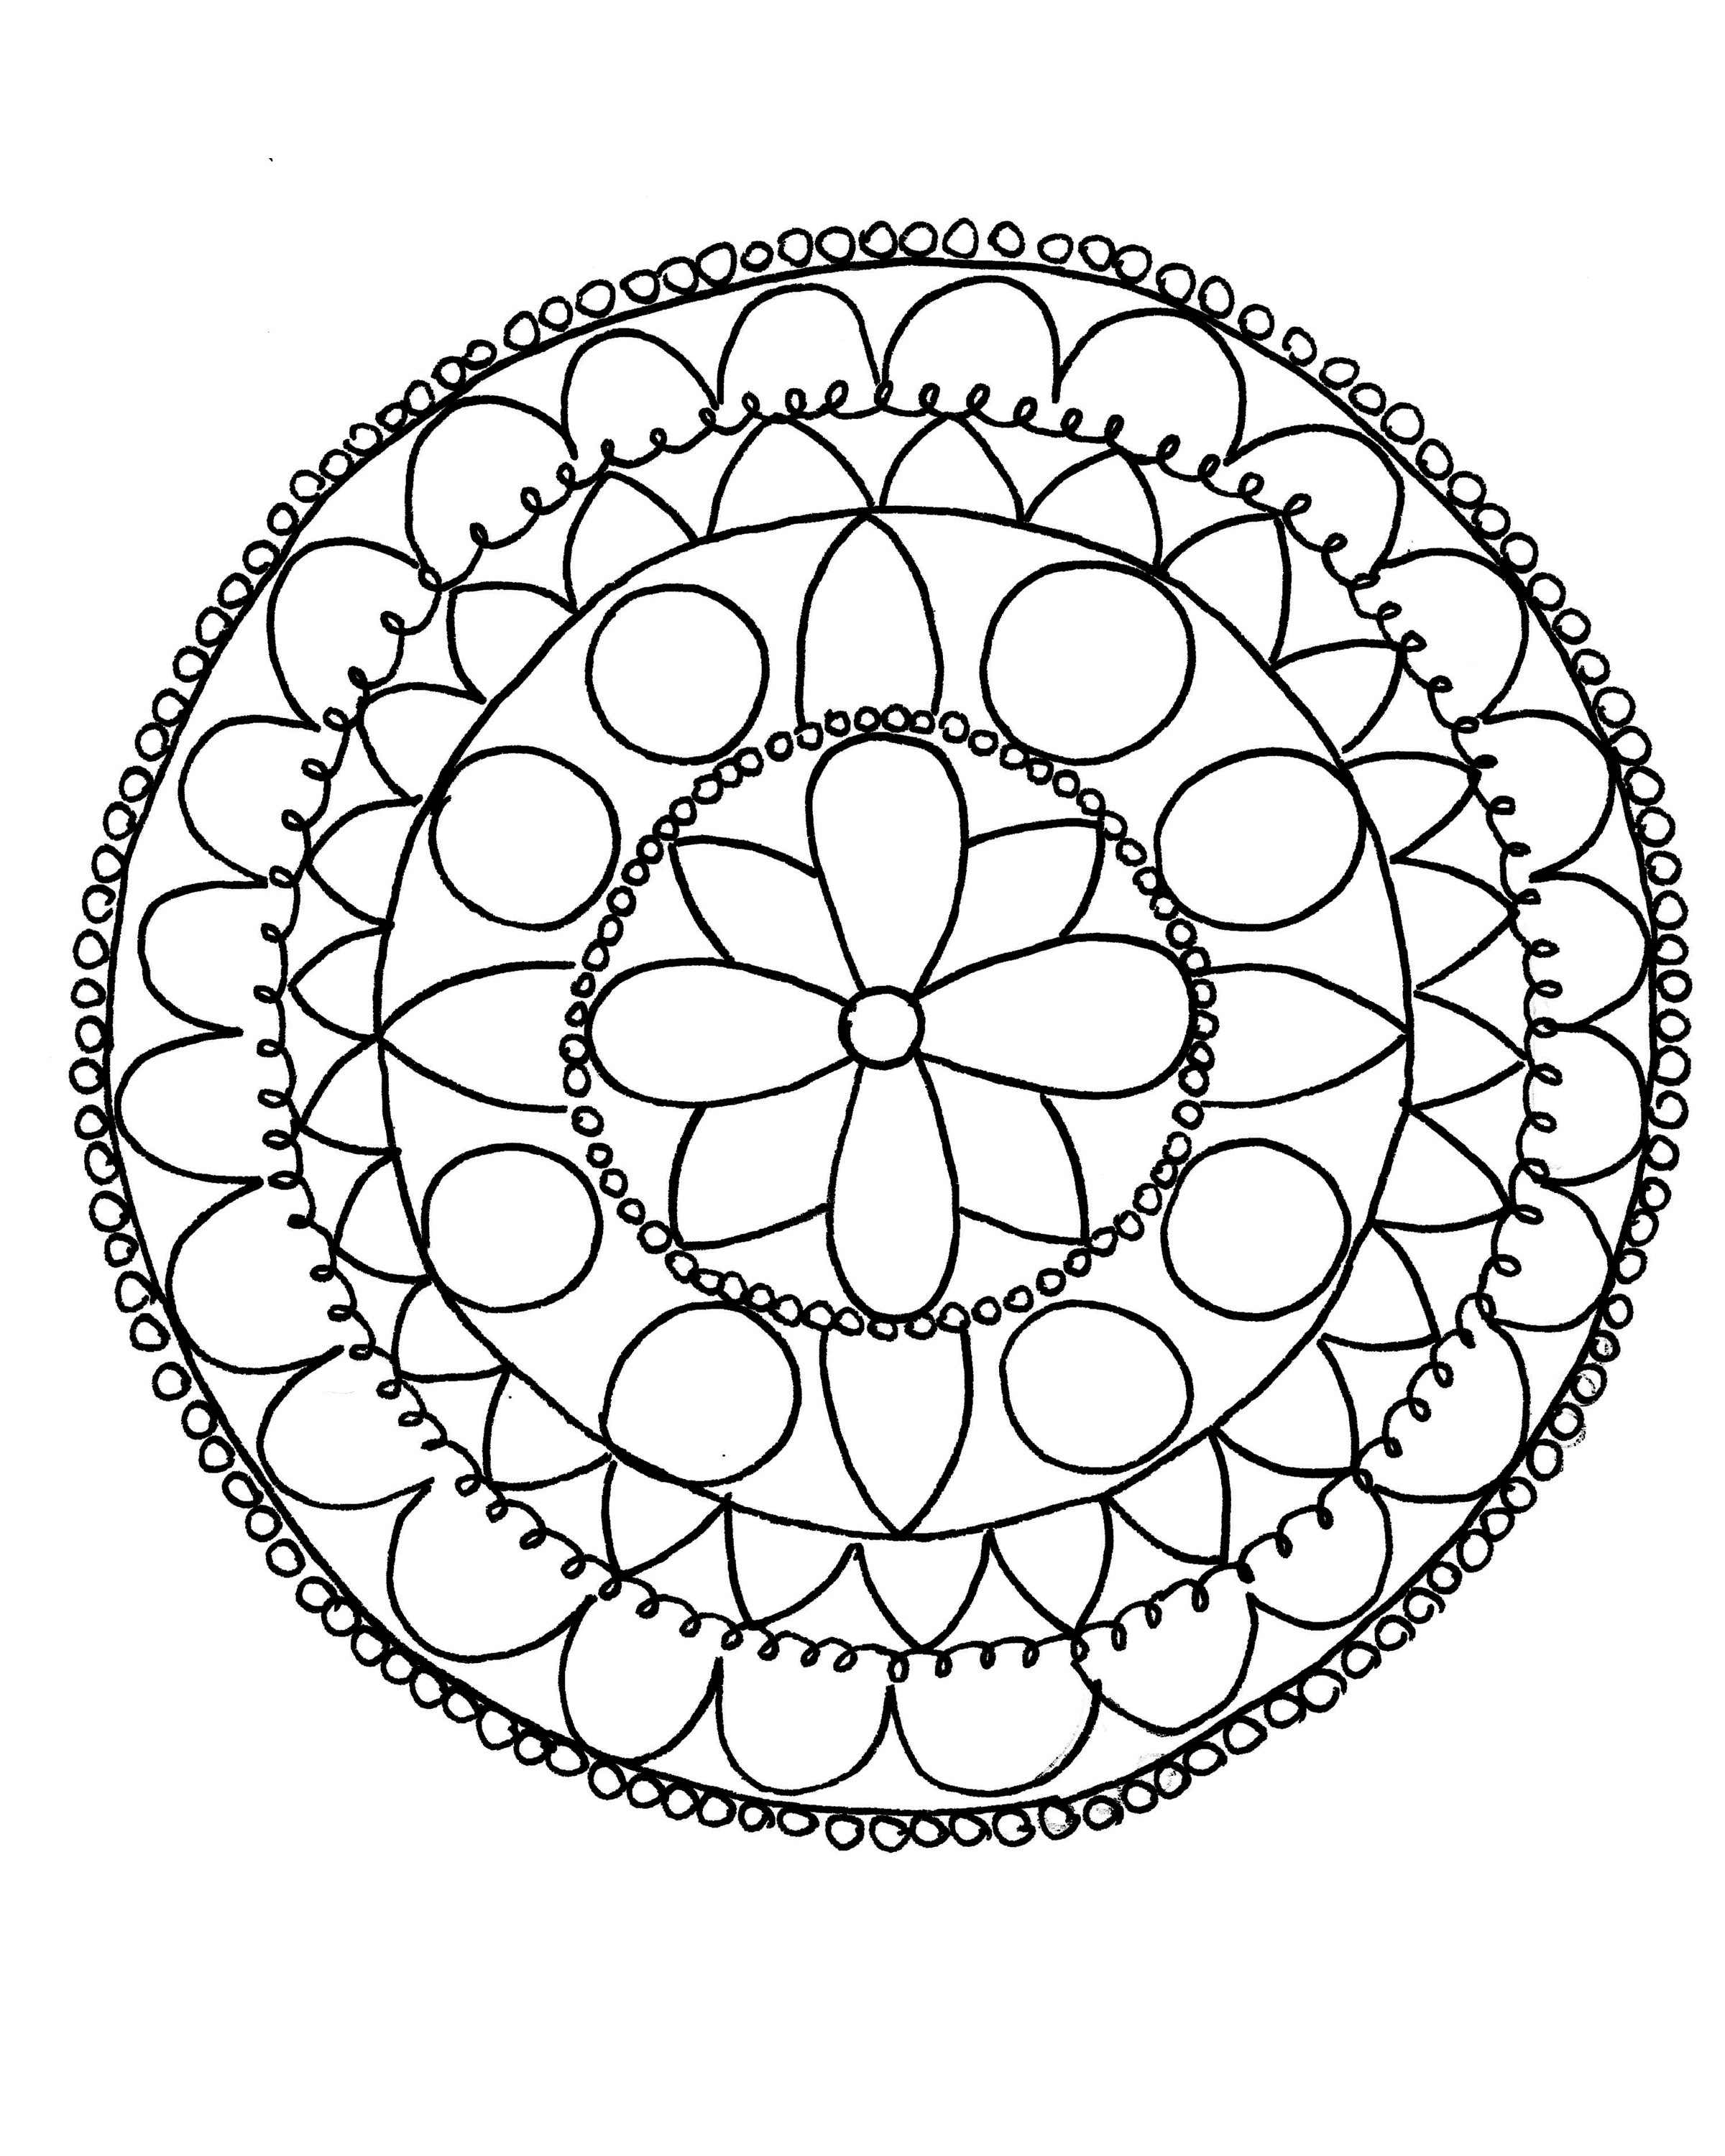 Mandala Design Coloring Pages At Getcolorings